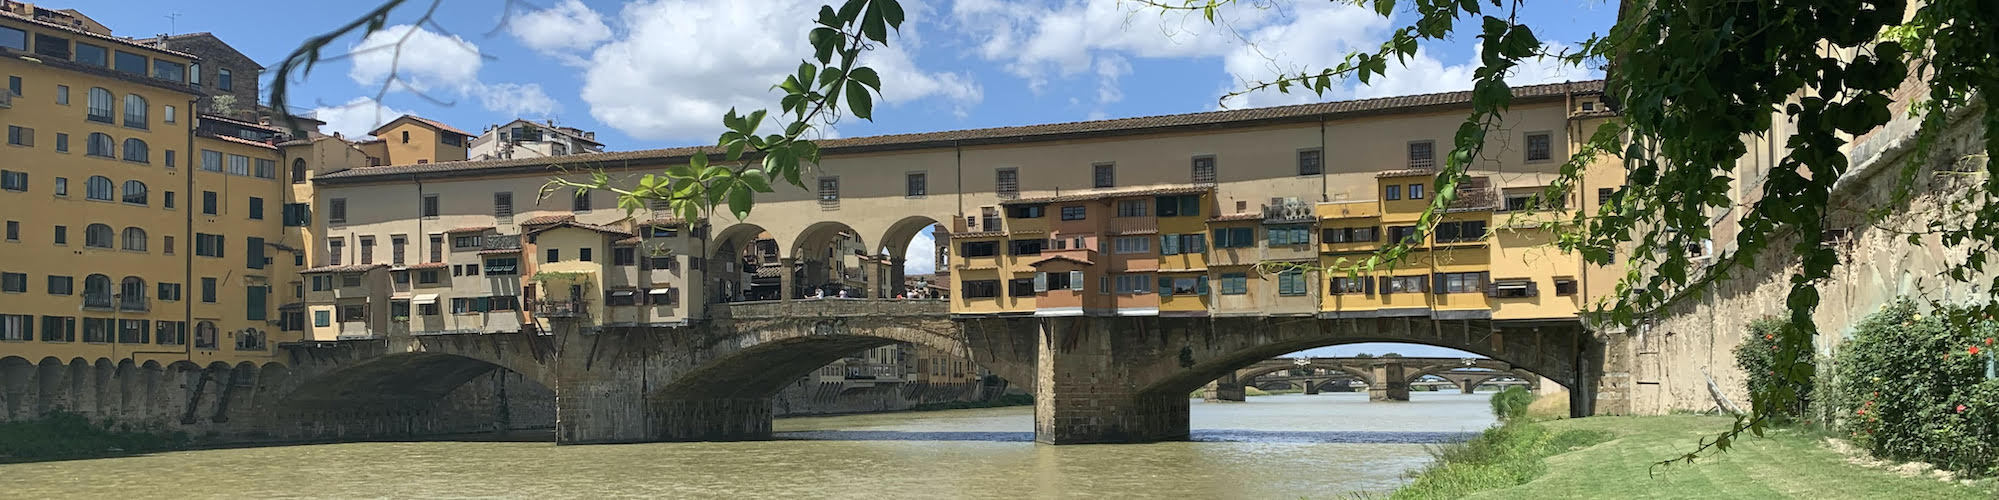 Florence Private Tours, Guided Walking Tours of Florence